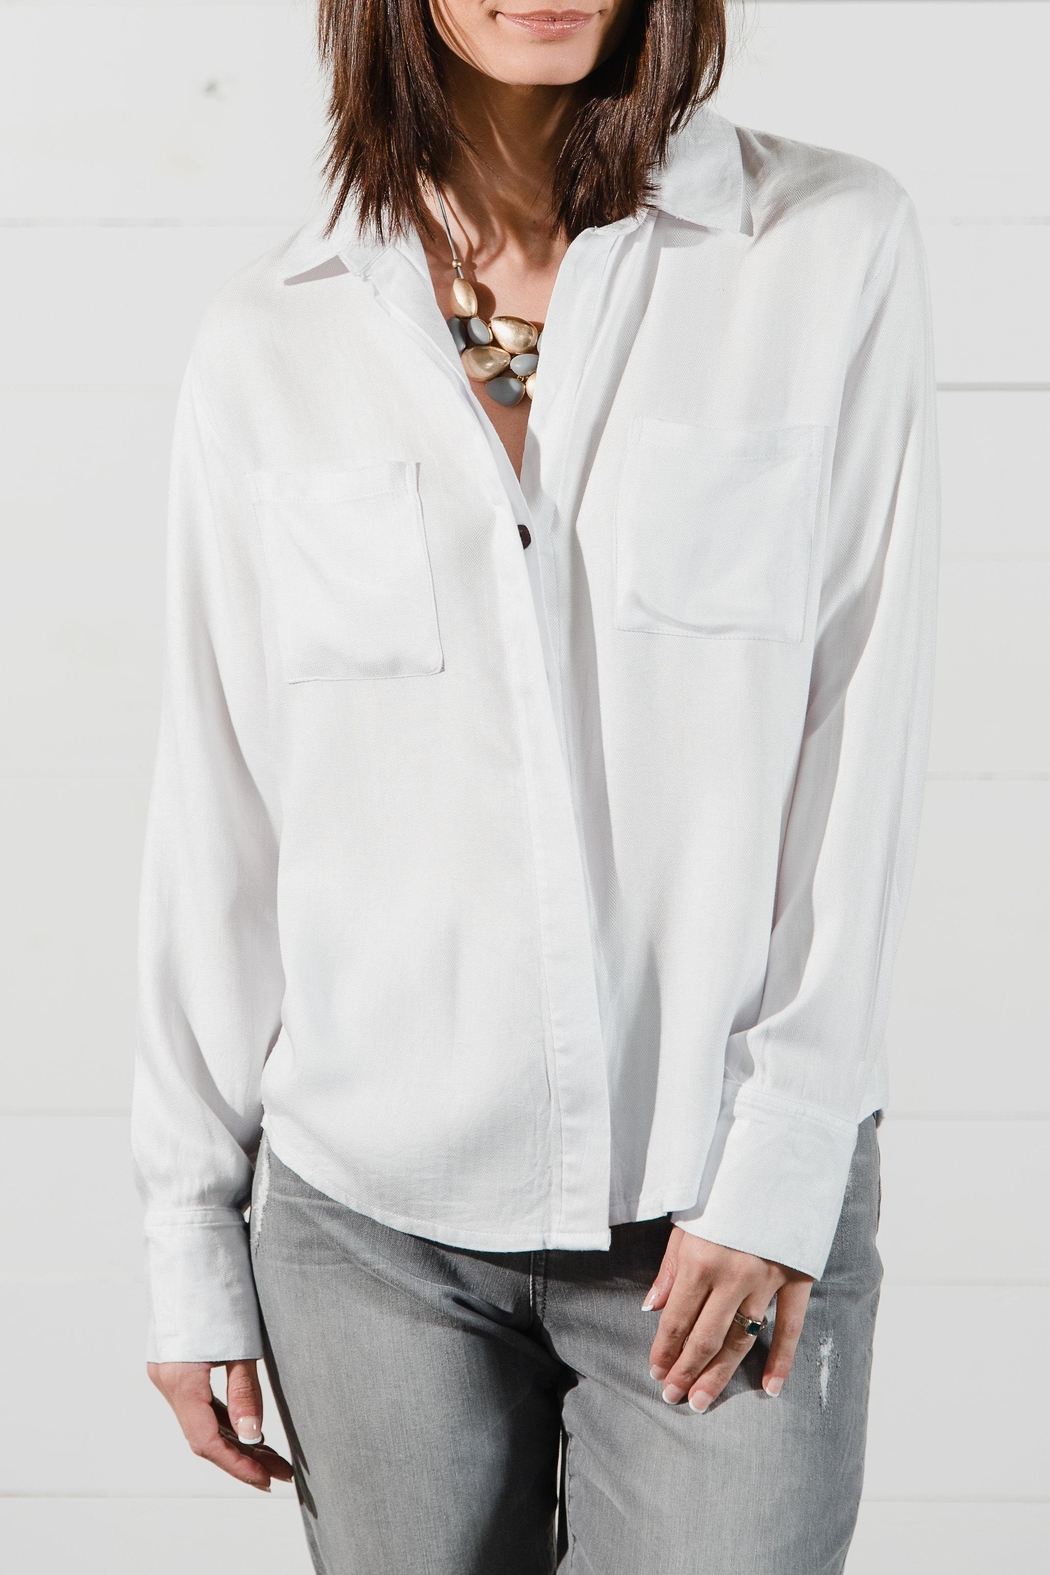 Go Fish Clothing White Button Front Blouse - Main Image